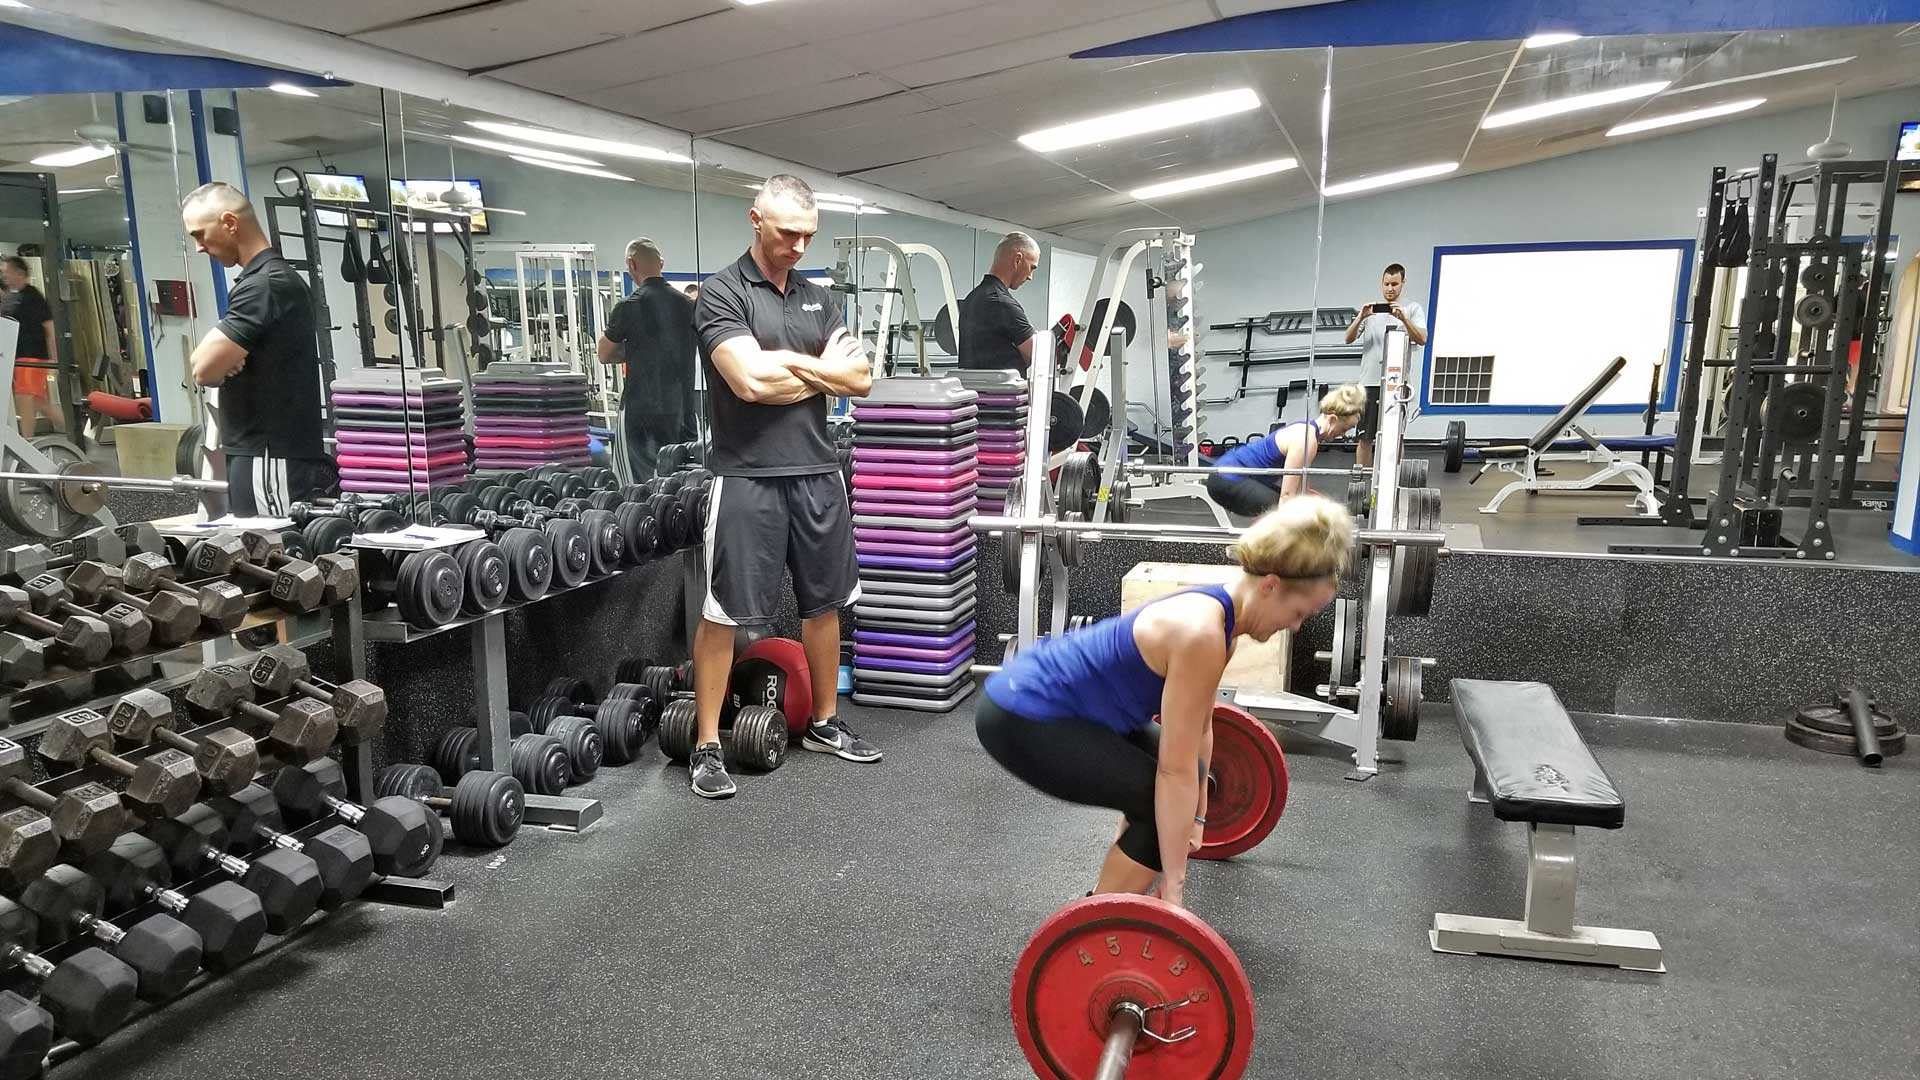 Personal training questions? Ask our professional, who is training with a mature athlete.